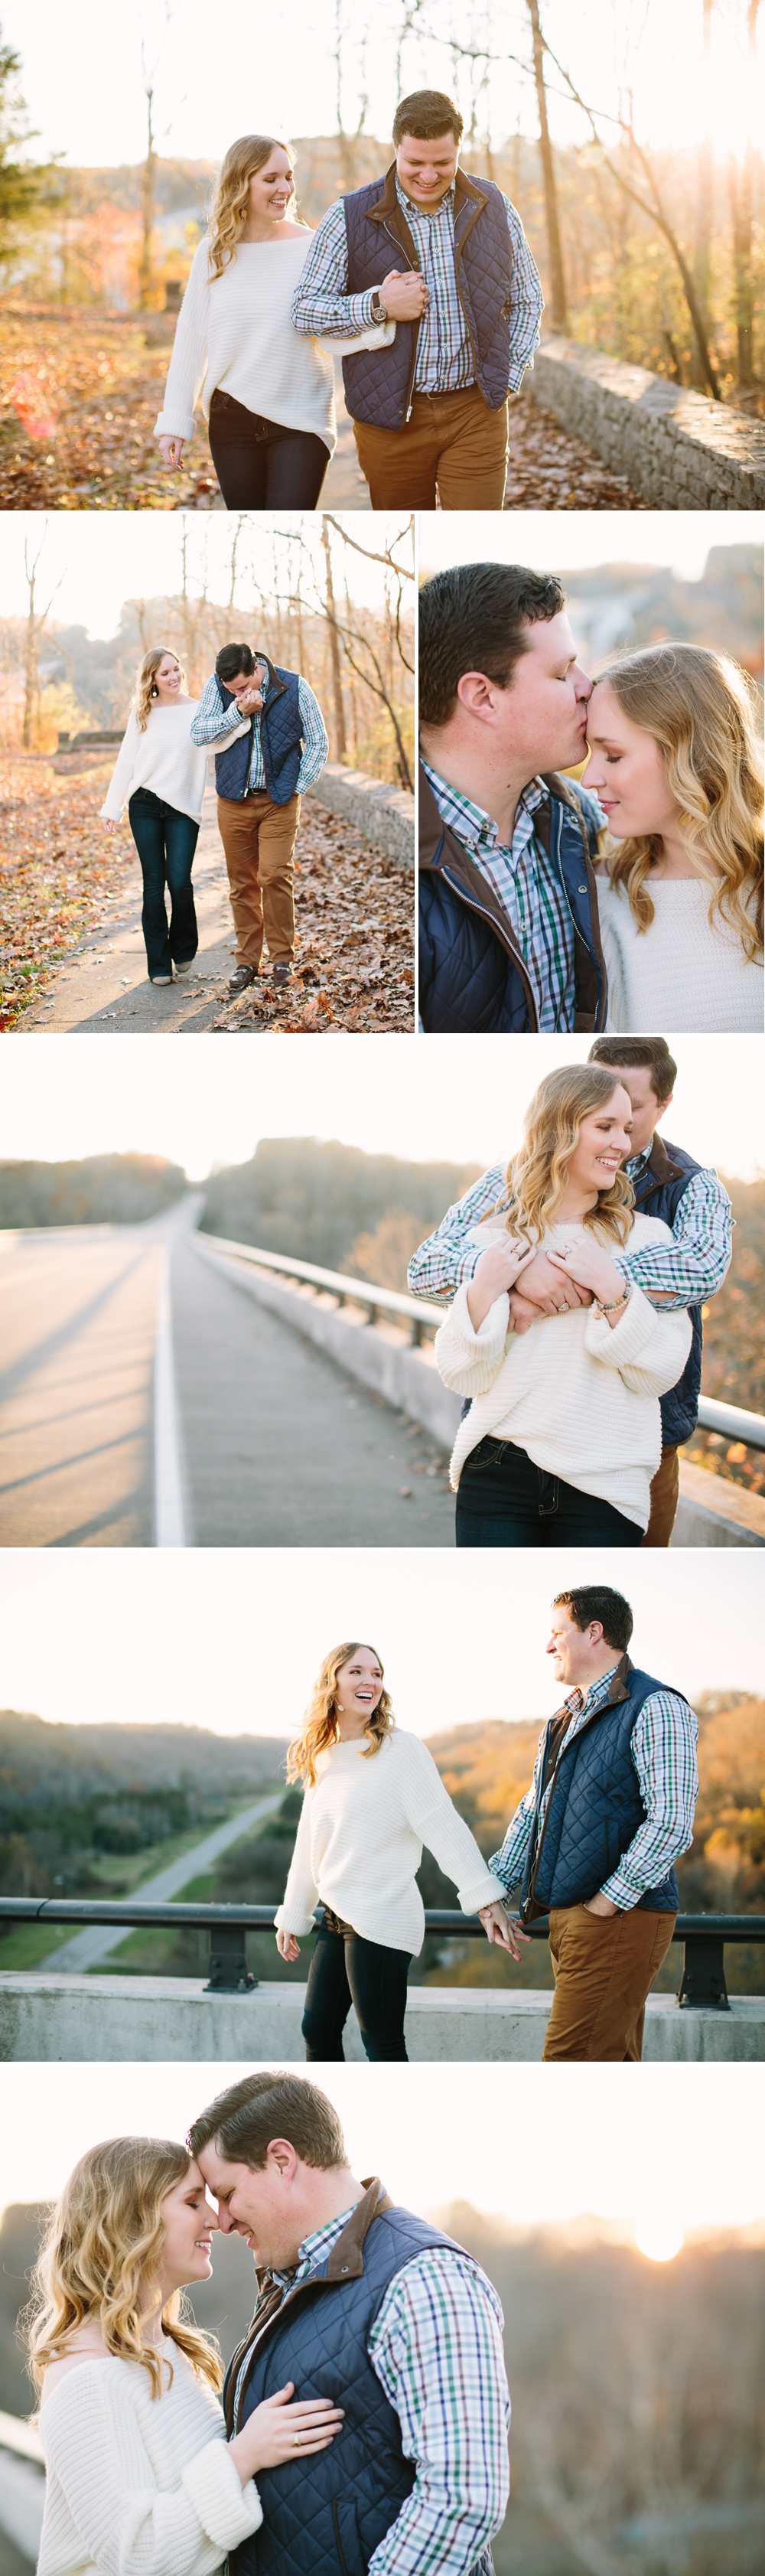 Nashville_Engagement_Photography_3.jpg